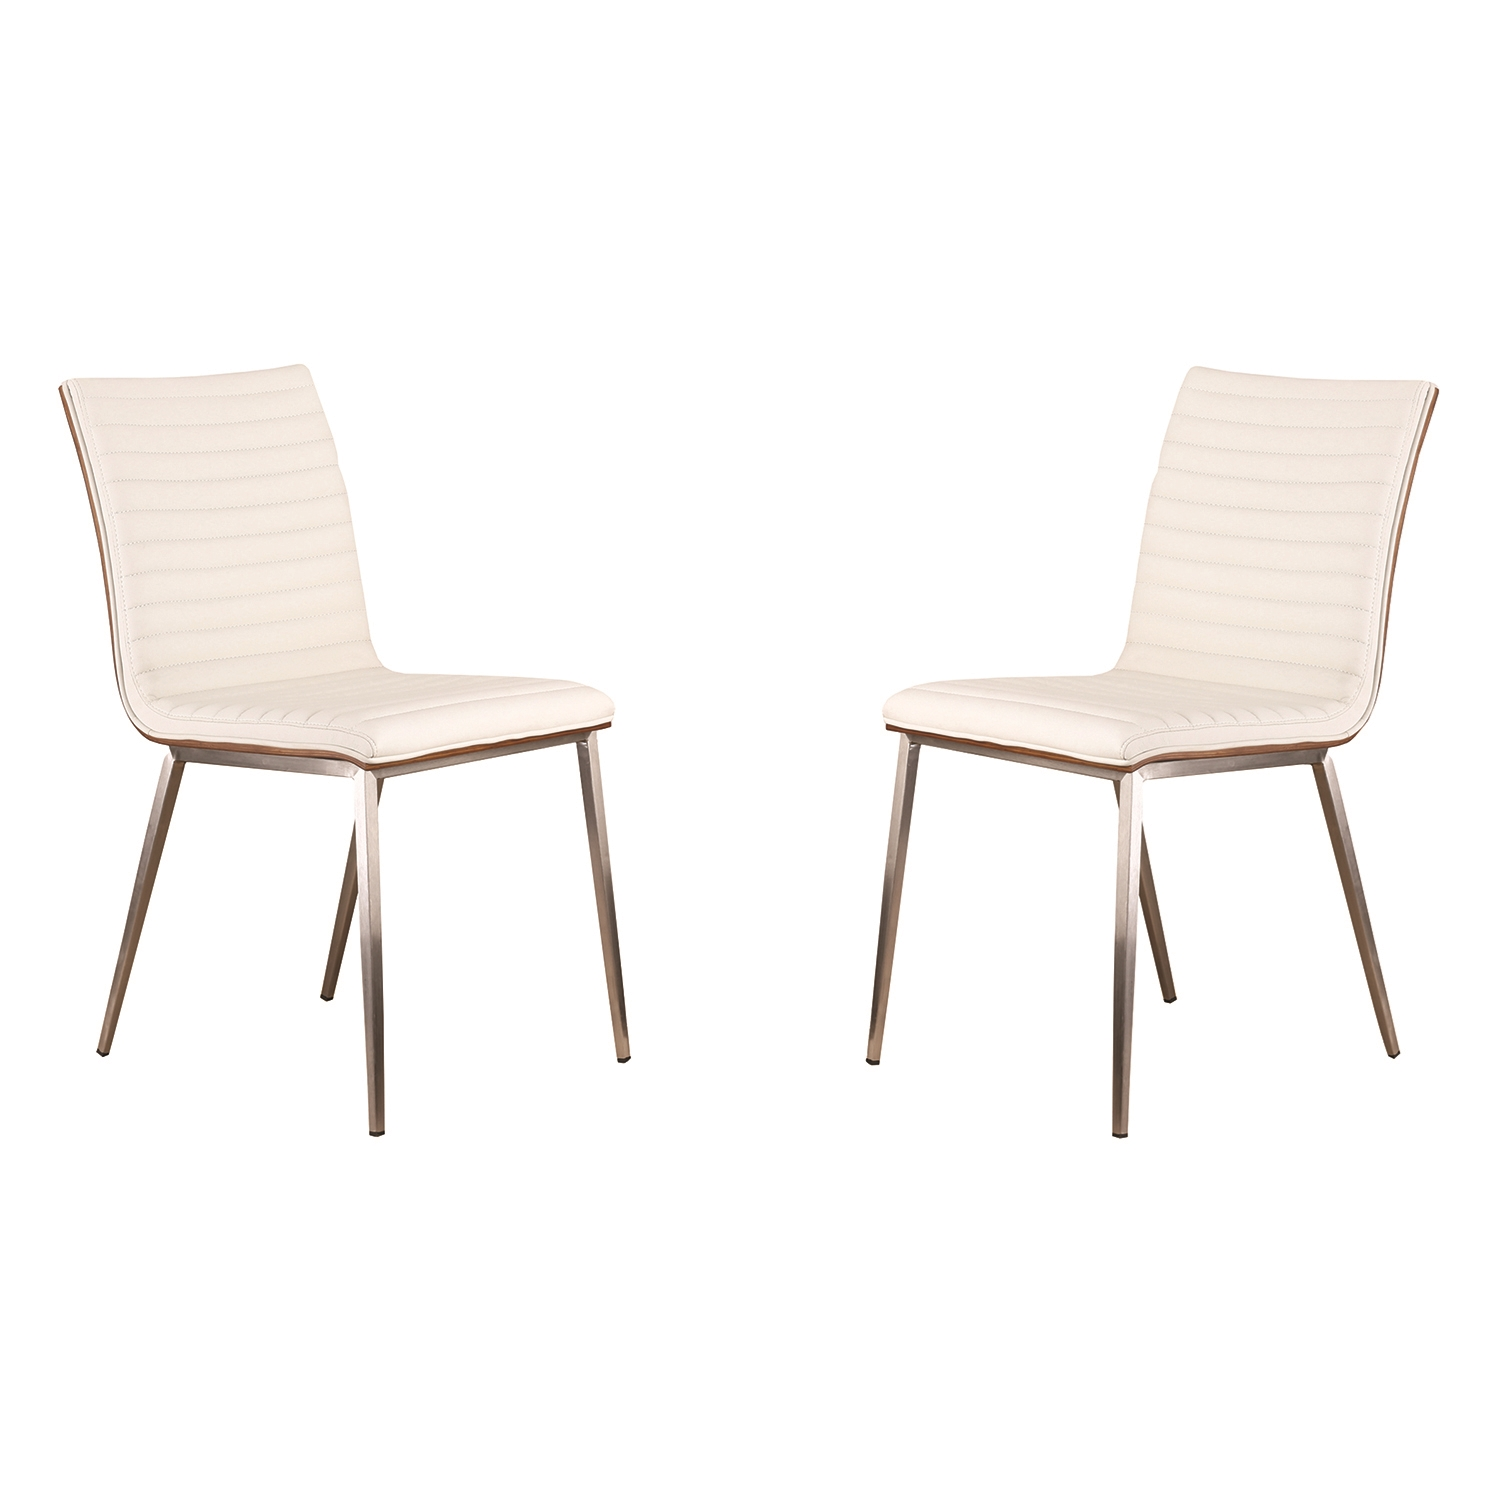 Cafe Dining Chair - White, Walnut Back, Brushed Stainless Steel (Set of 2) - AL-LCCACHWHB201